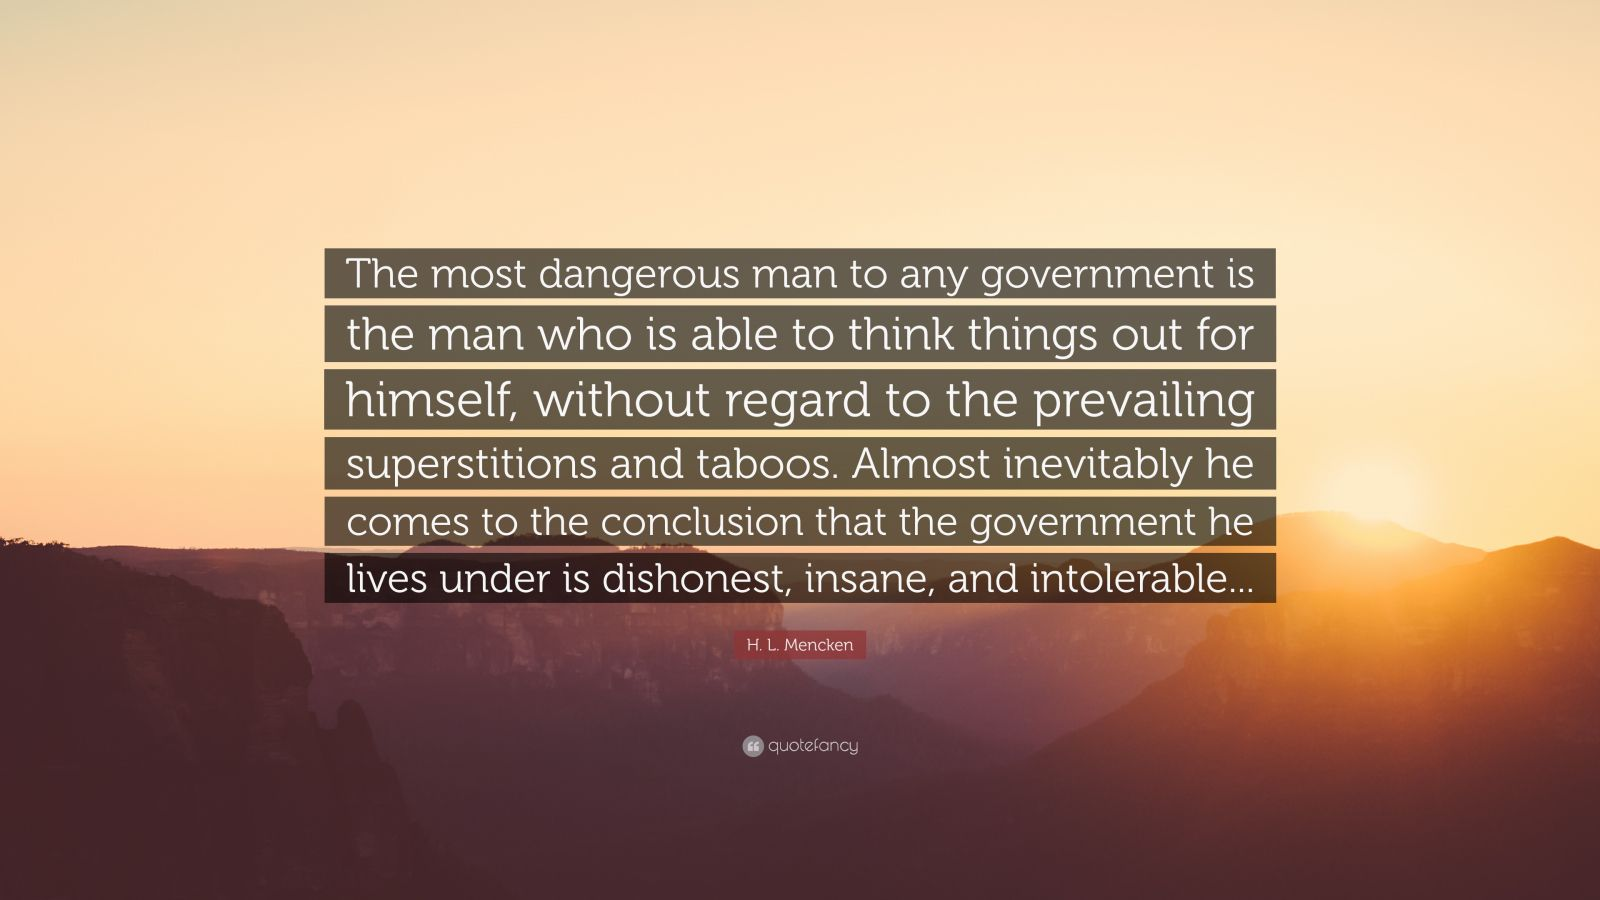 "H. L. Mencken Quote: ""The most dangerous man to any government is the man who is able to think things out for himself, without regard to the prevailing superstitions and taboos. Almost inevitably he comes to the conclusion that the government he lives under is dishonest, insane, and intolerable..."""